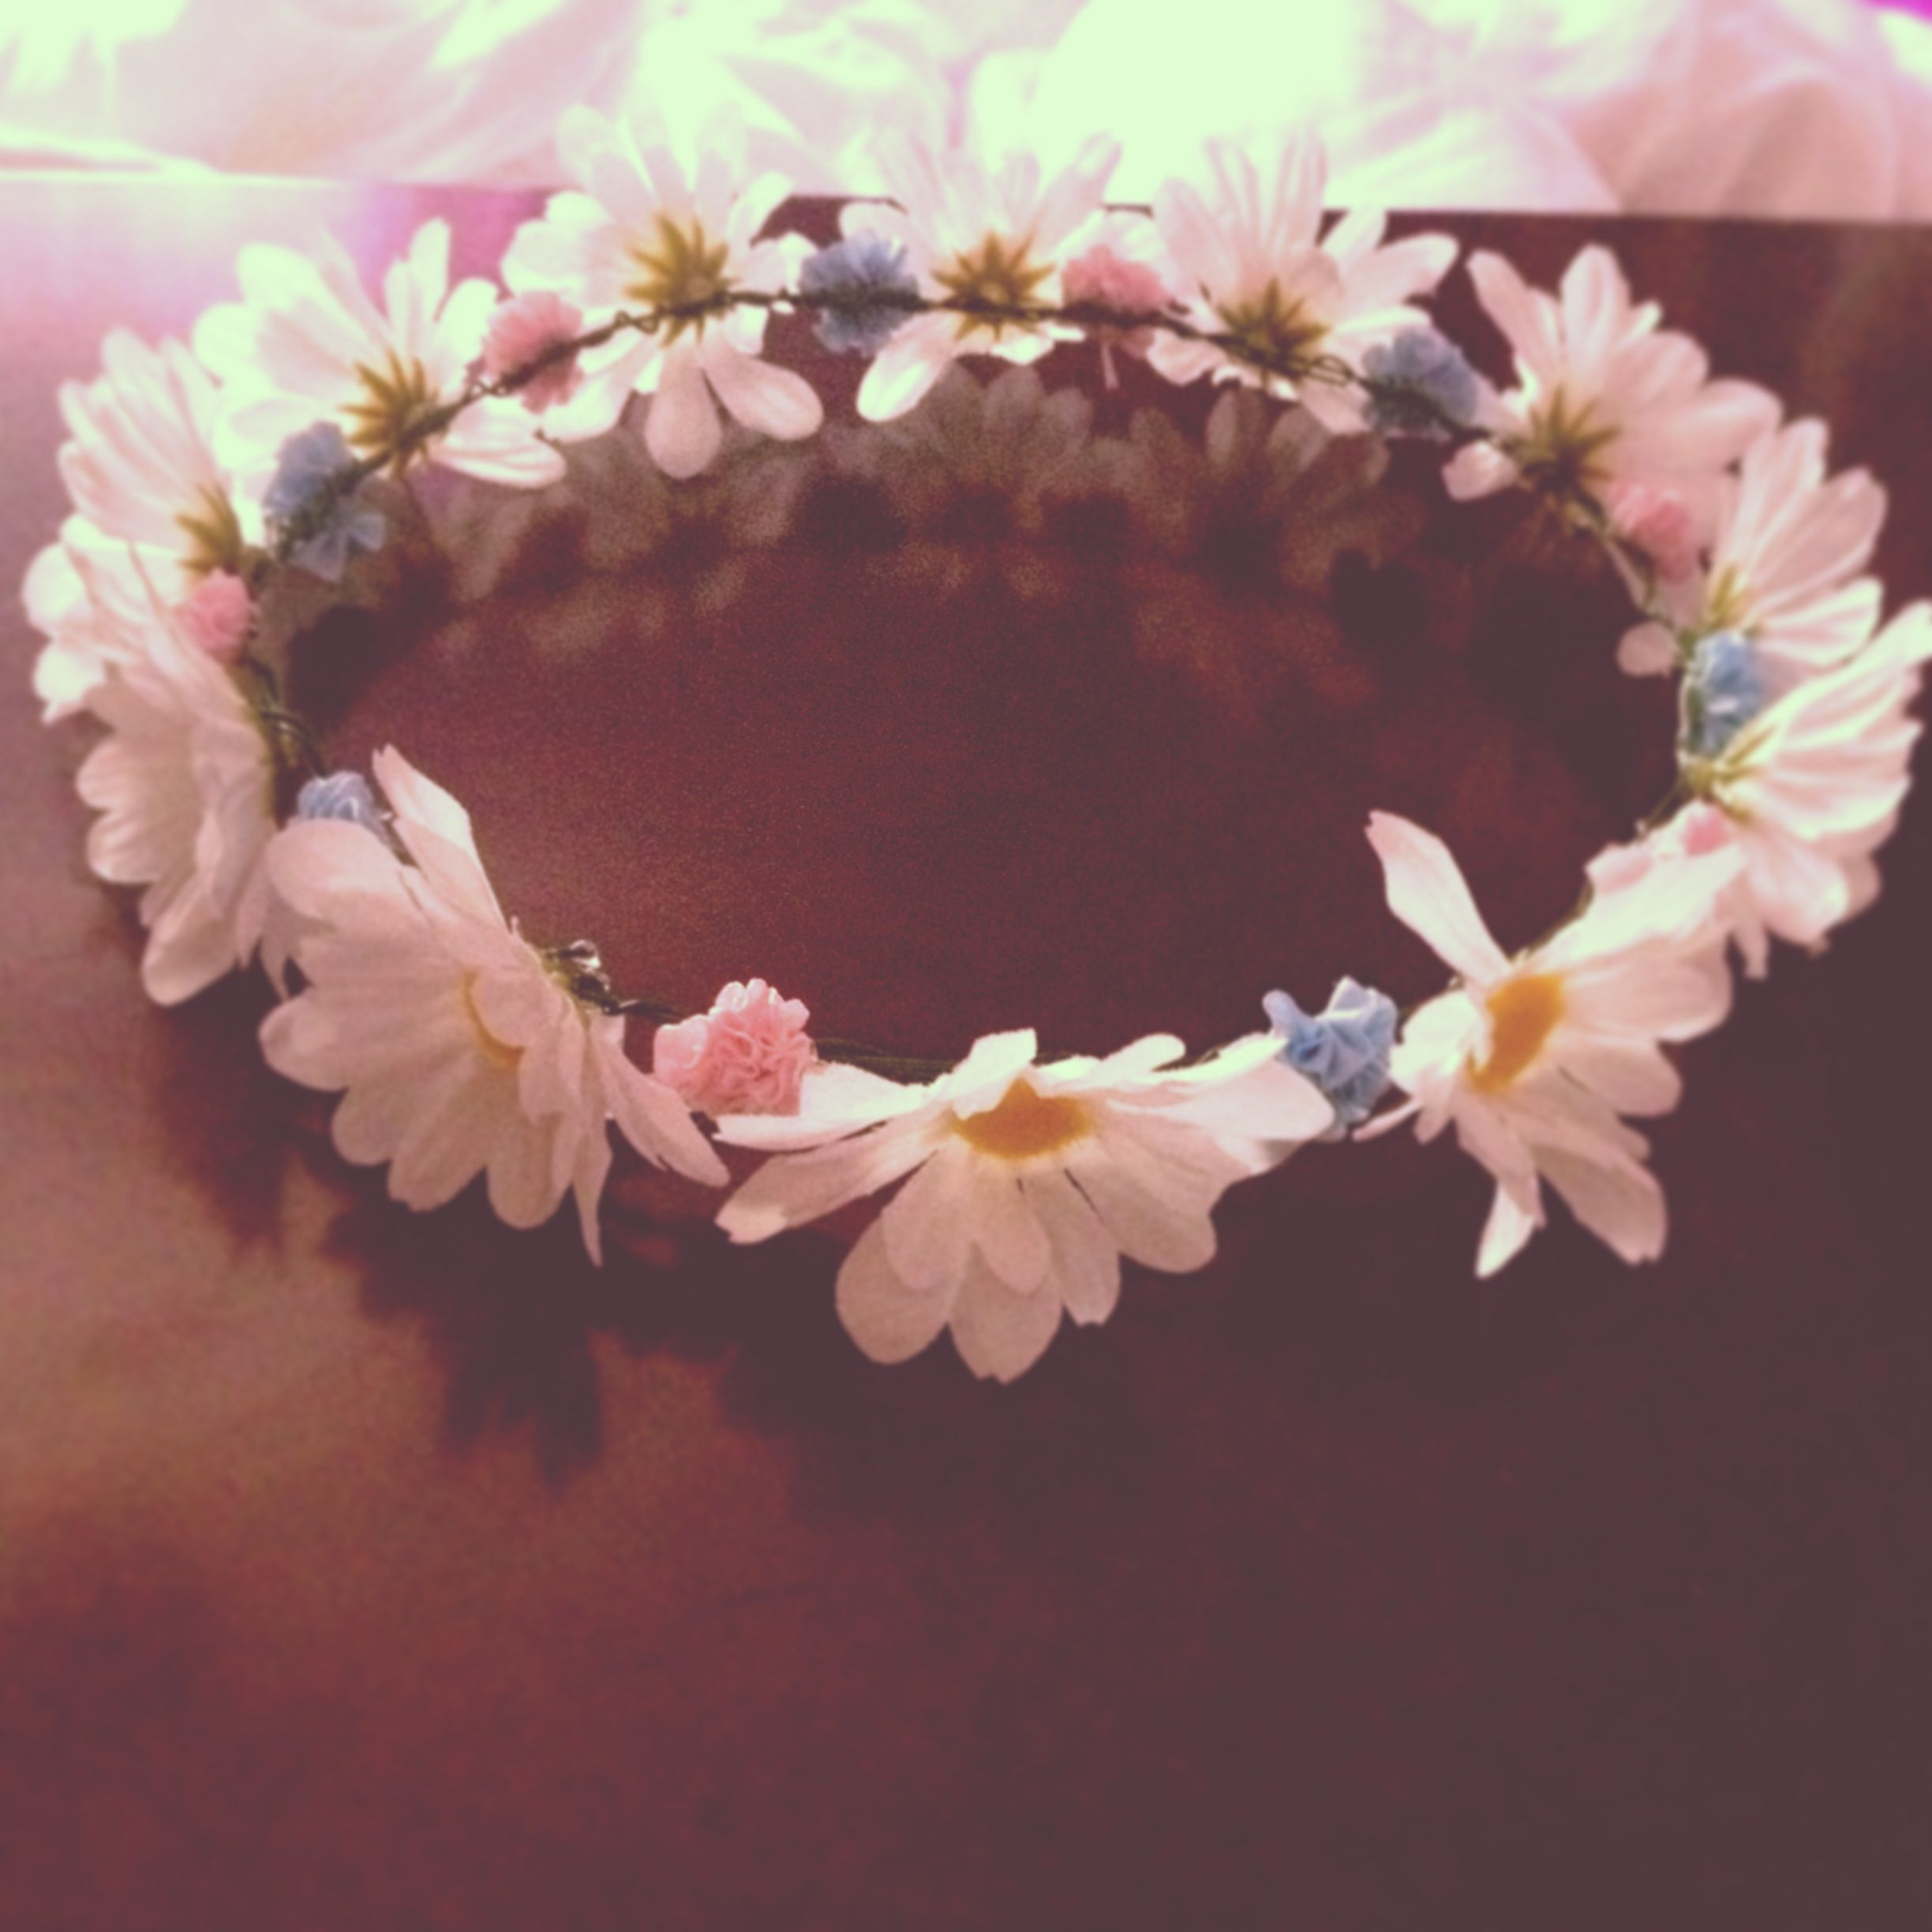 Homemade flower crown using hot glue fake flowers and flower wire homemade flower crown using hot glue fake flowers and flower wire homemade flower crownsdiy izmirmasajfo Images